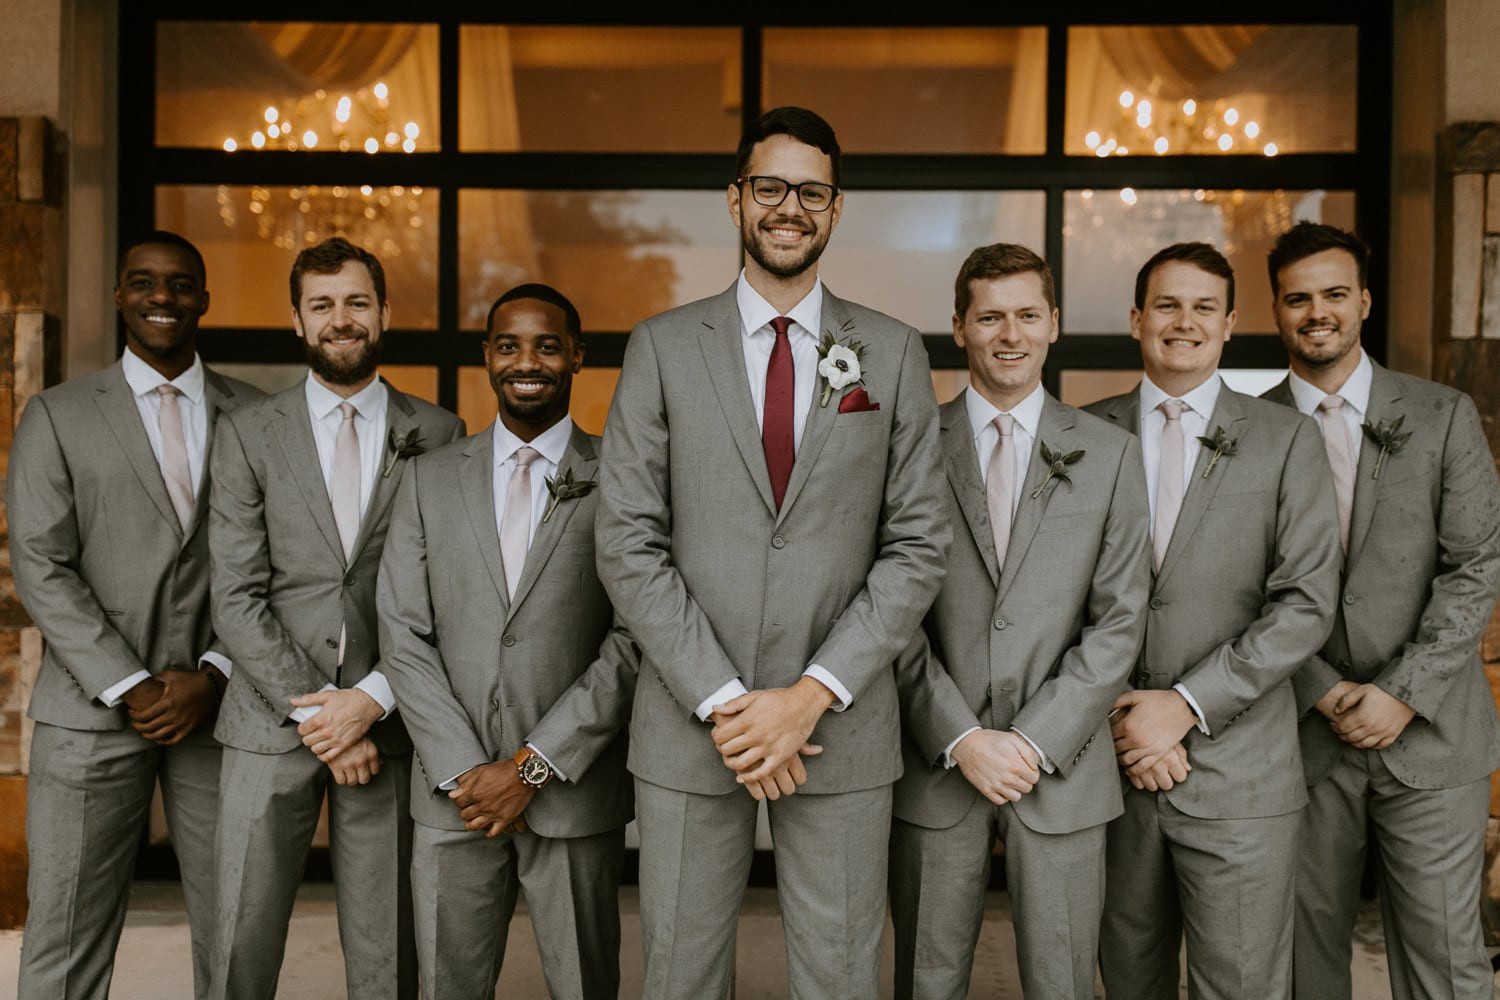 Groom and groomsmen in front of venue window